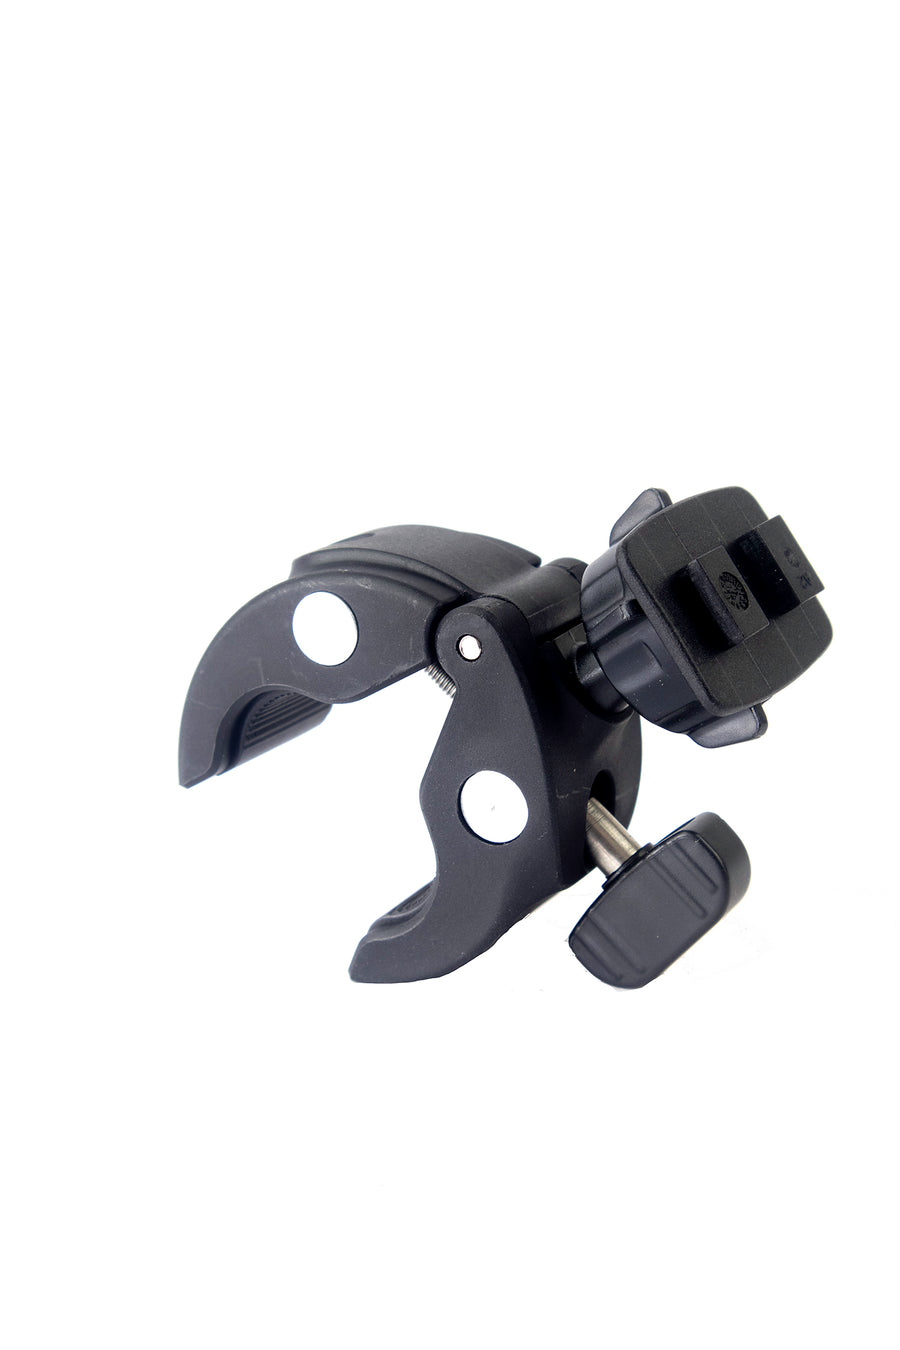 LM-1001-2T Clamp mount with Double T